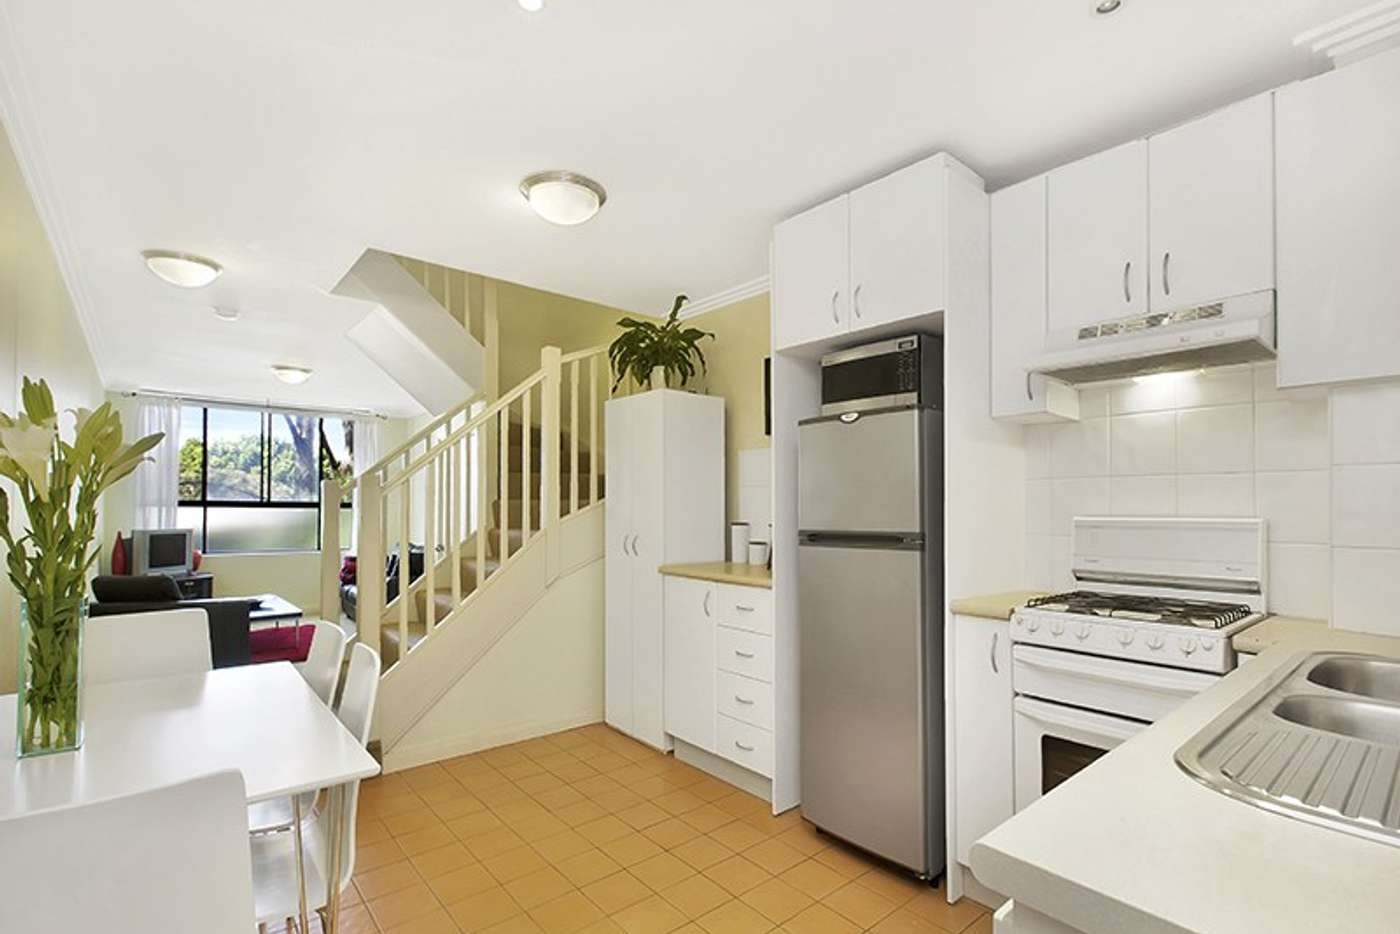 Main view of Homely apartment listing, 19/172-180 Clovelly Road, Clovelly NSW 2031